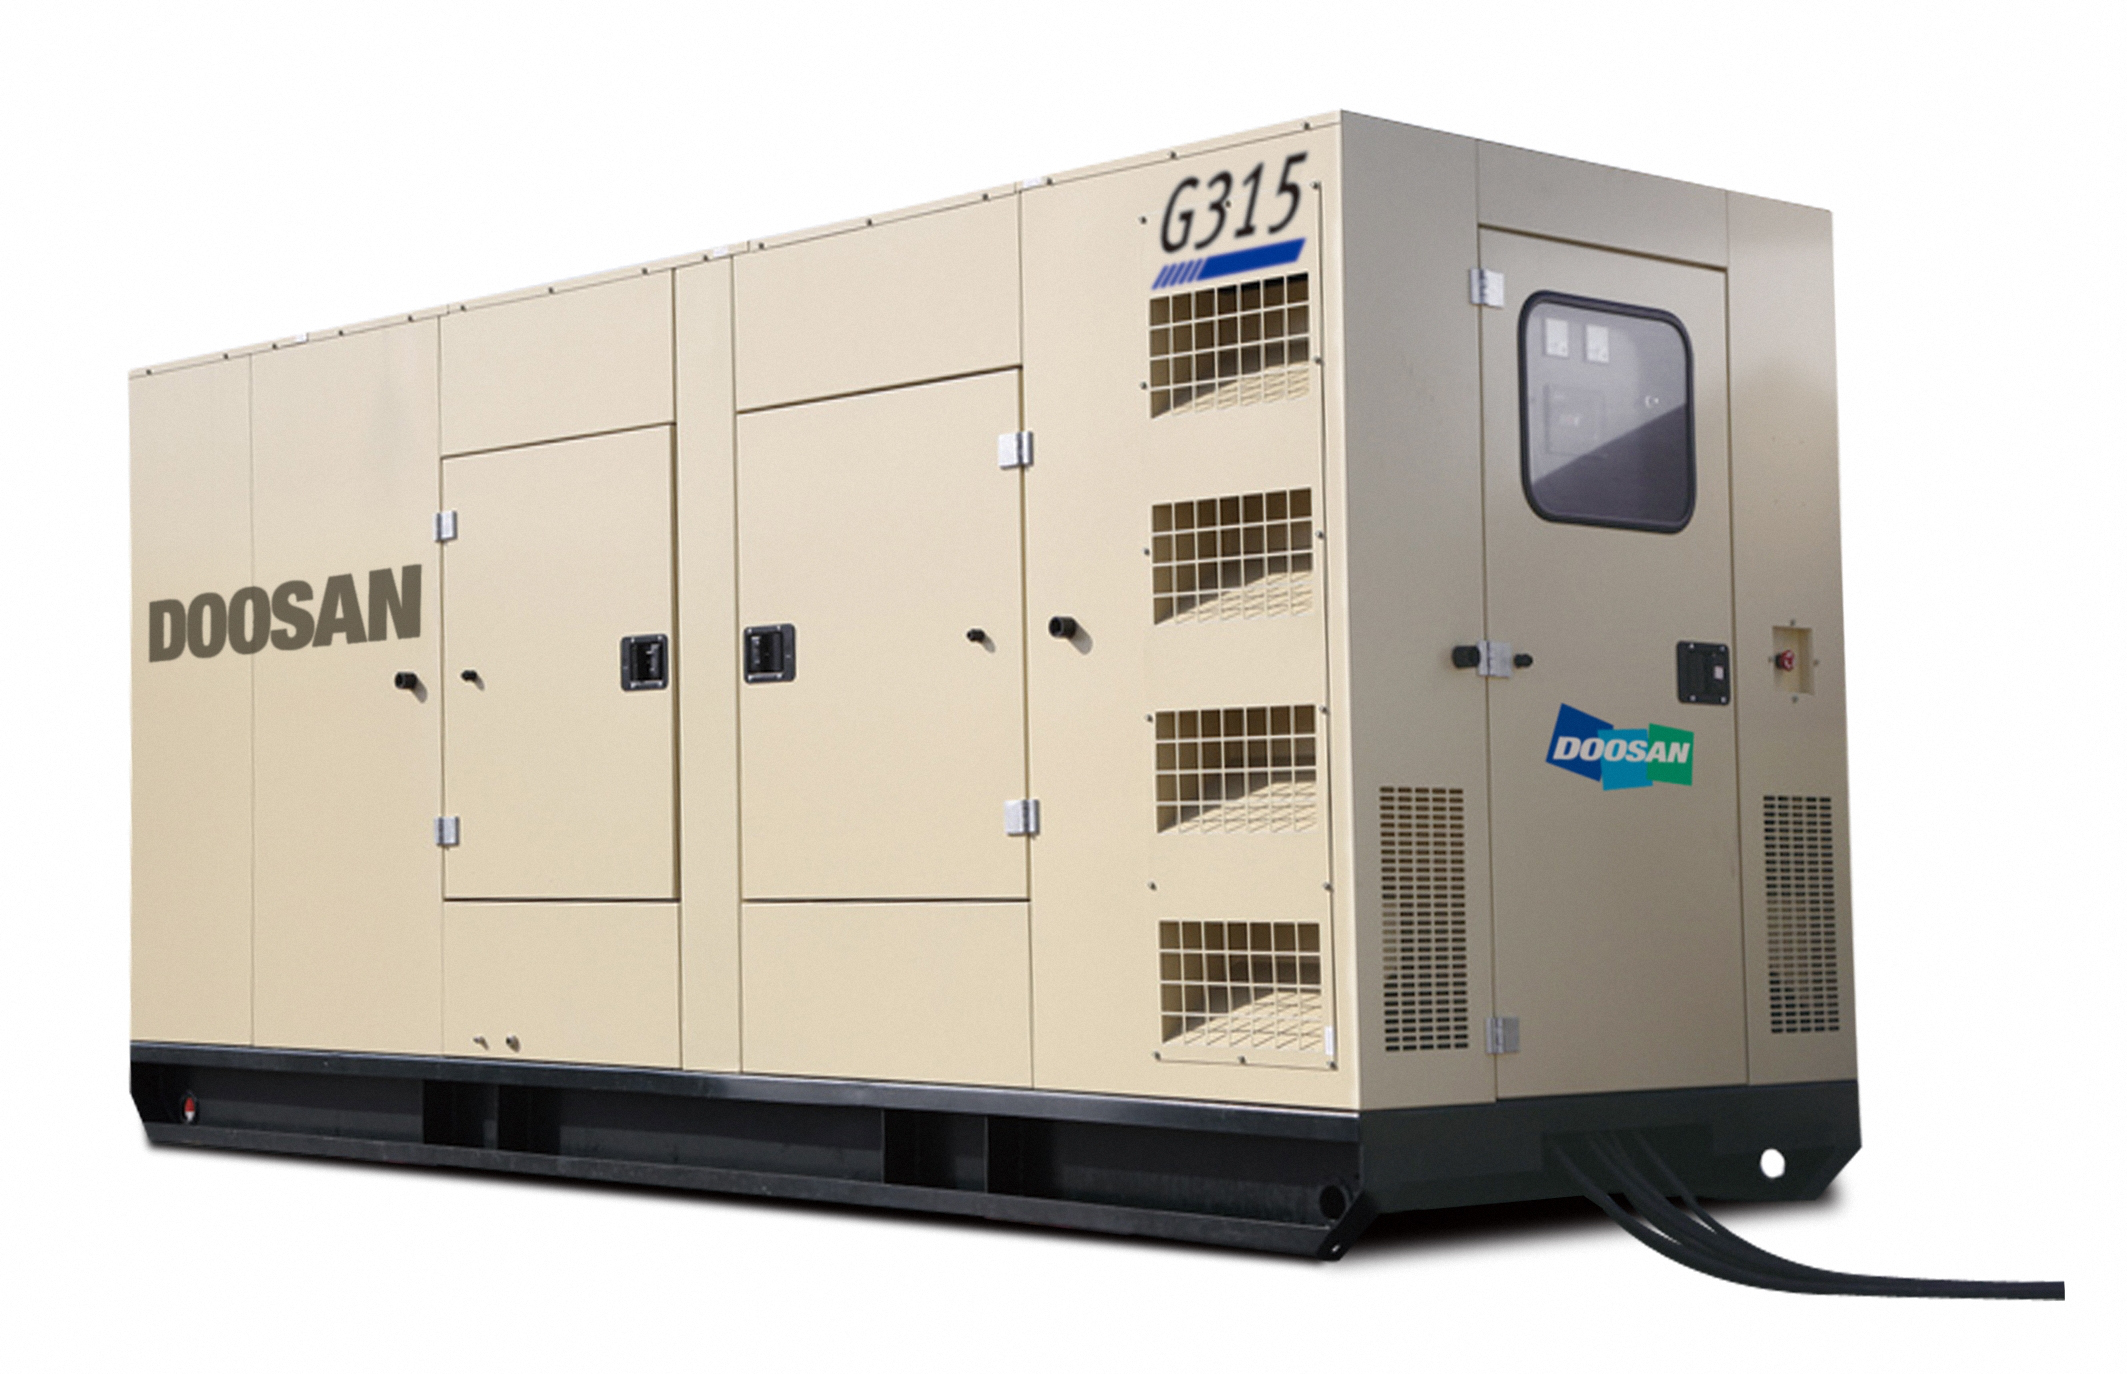 Doosan Portable Power introduces generators tar ed at specialty